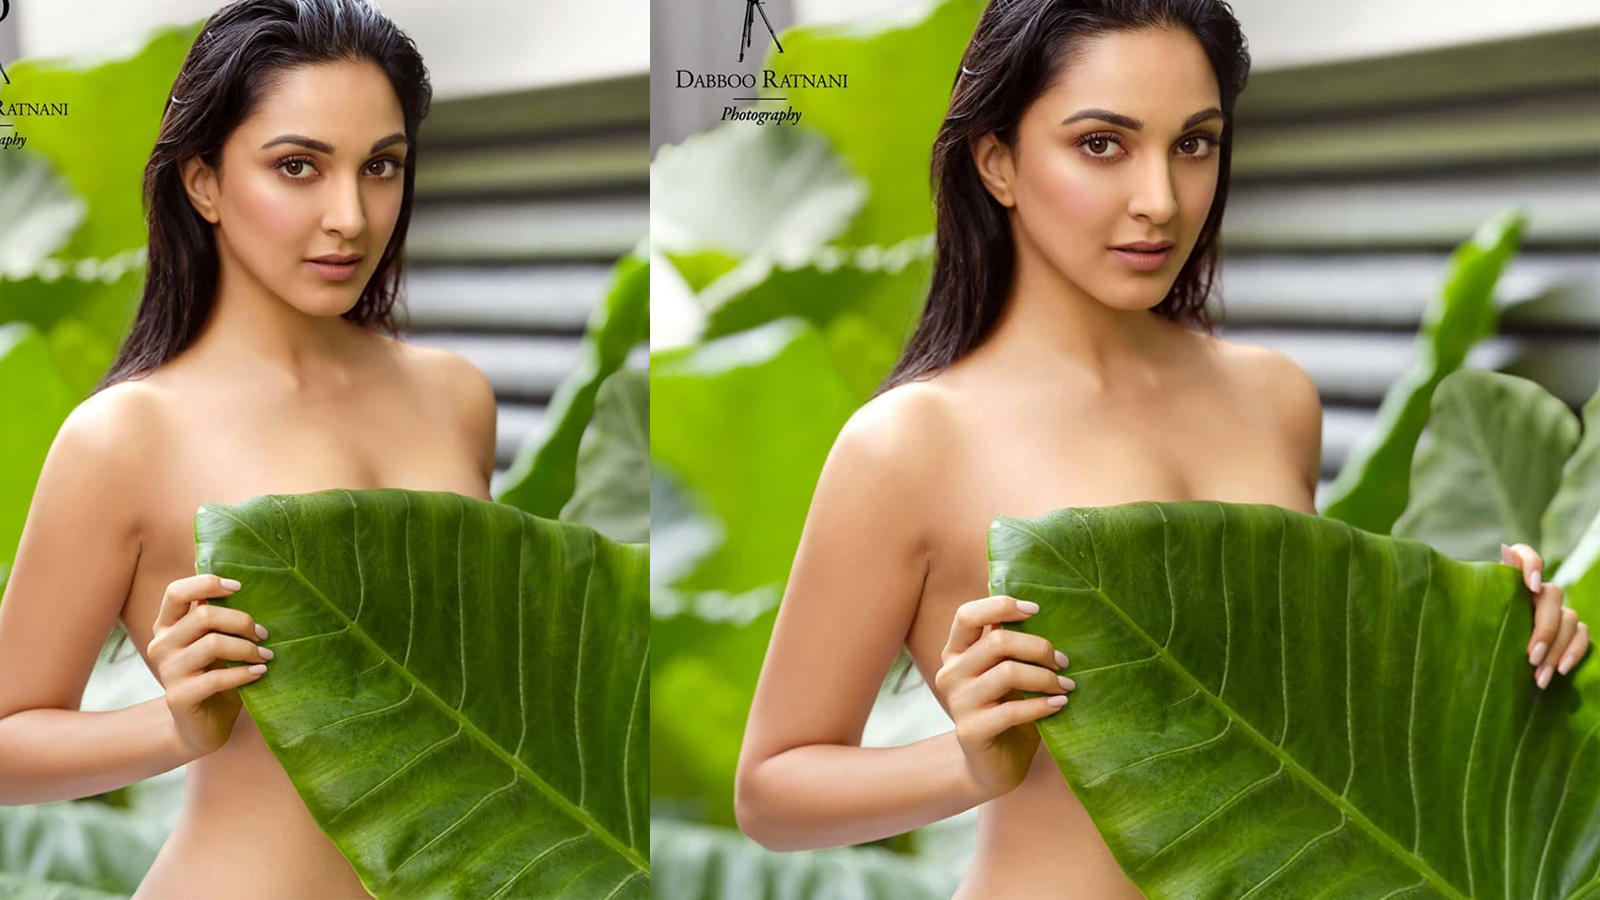 Kiara Advani Leaf Photo by Dabboo Ratnani, Claims International Photographer